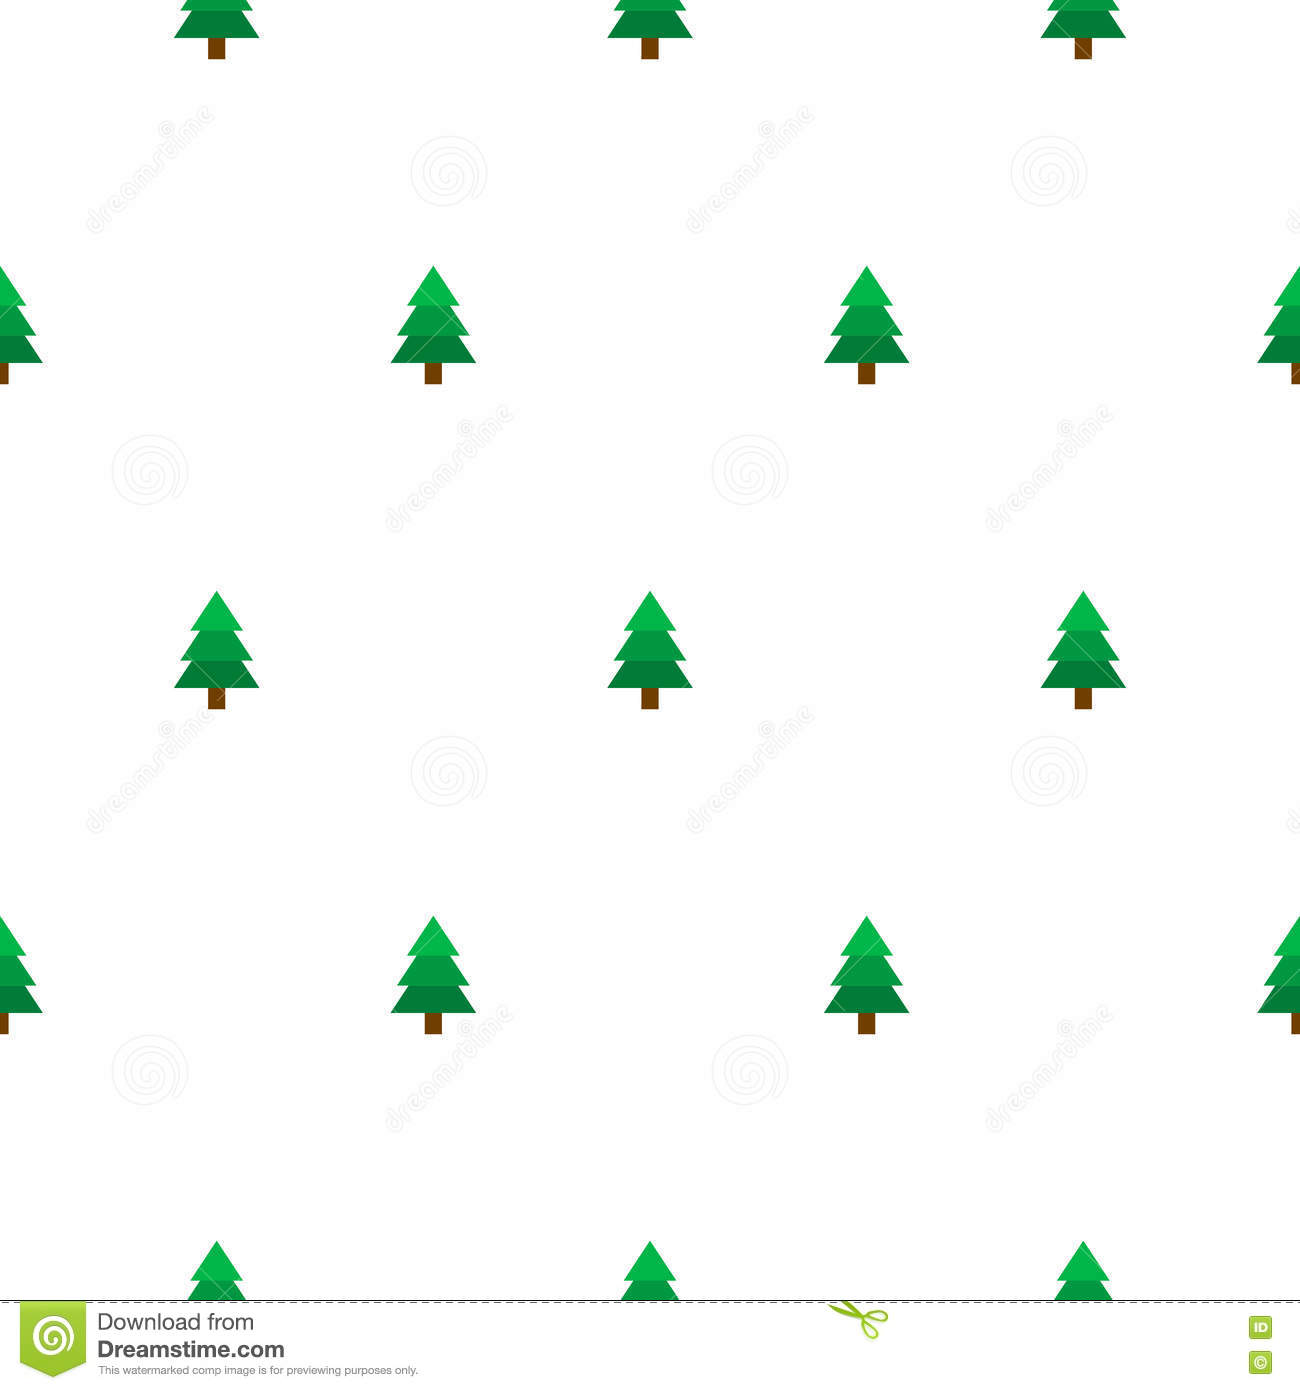 New Year Tree Simple Seamless Vector Pattern Stock Vector Illustration Of Decor Winter 79789571